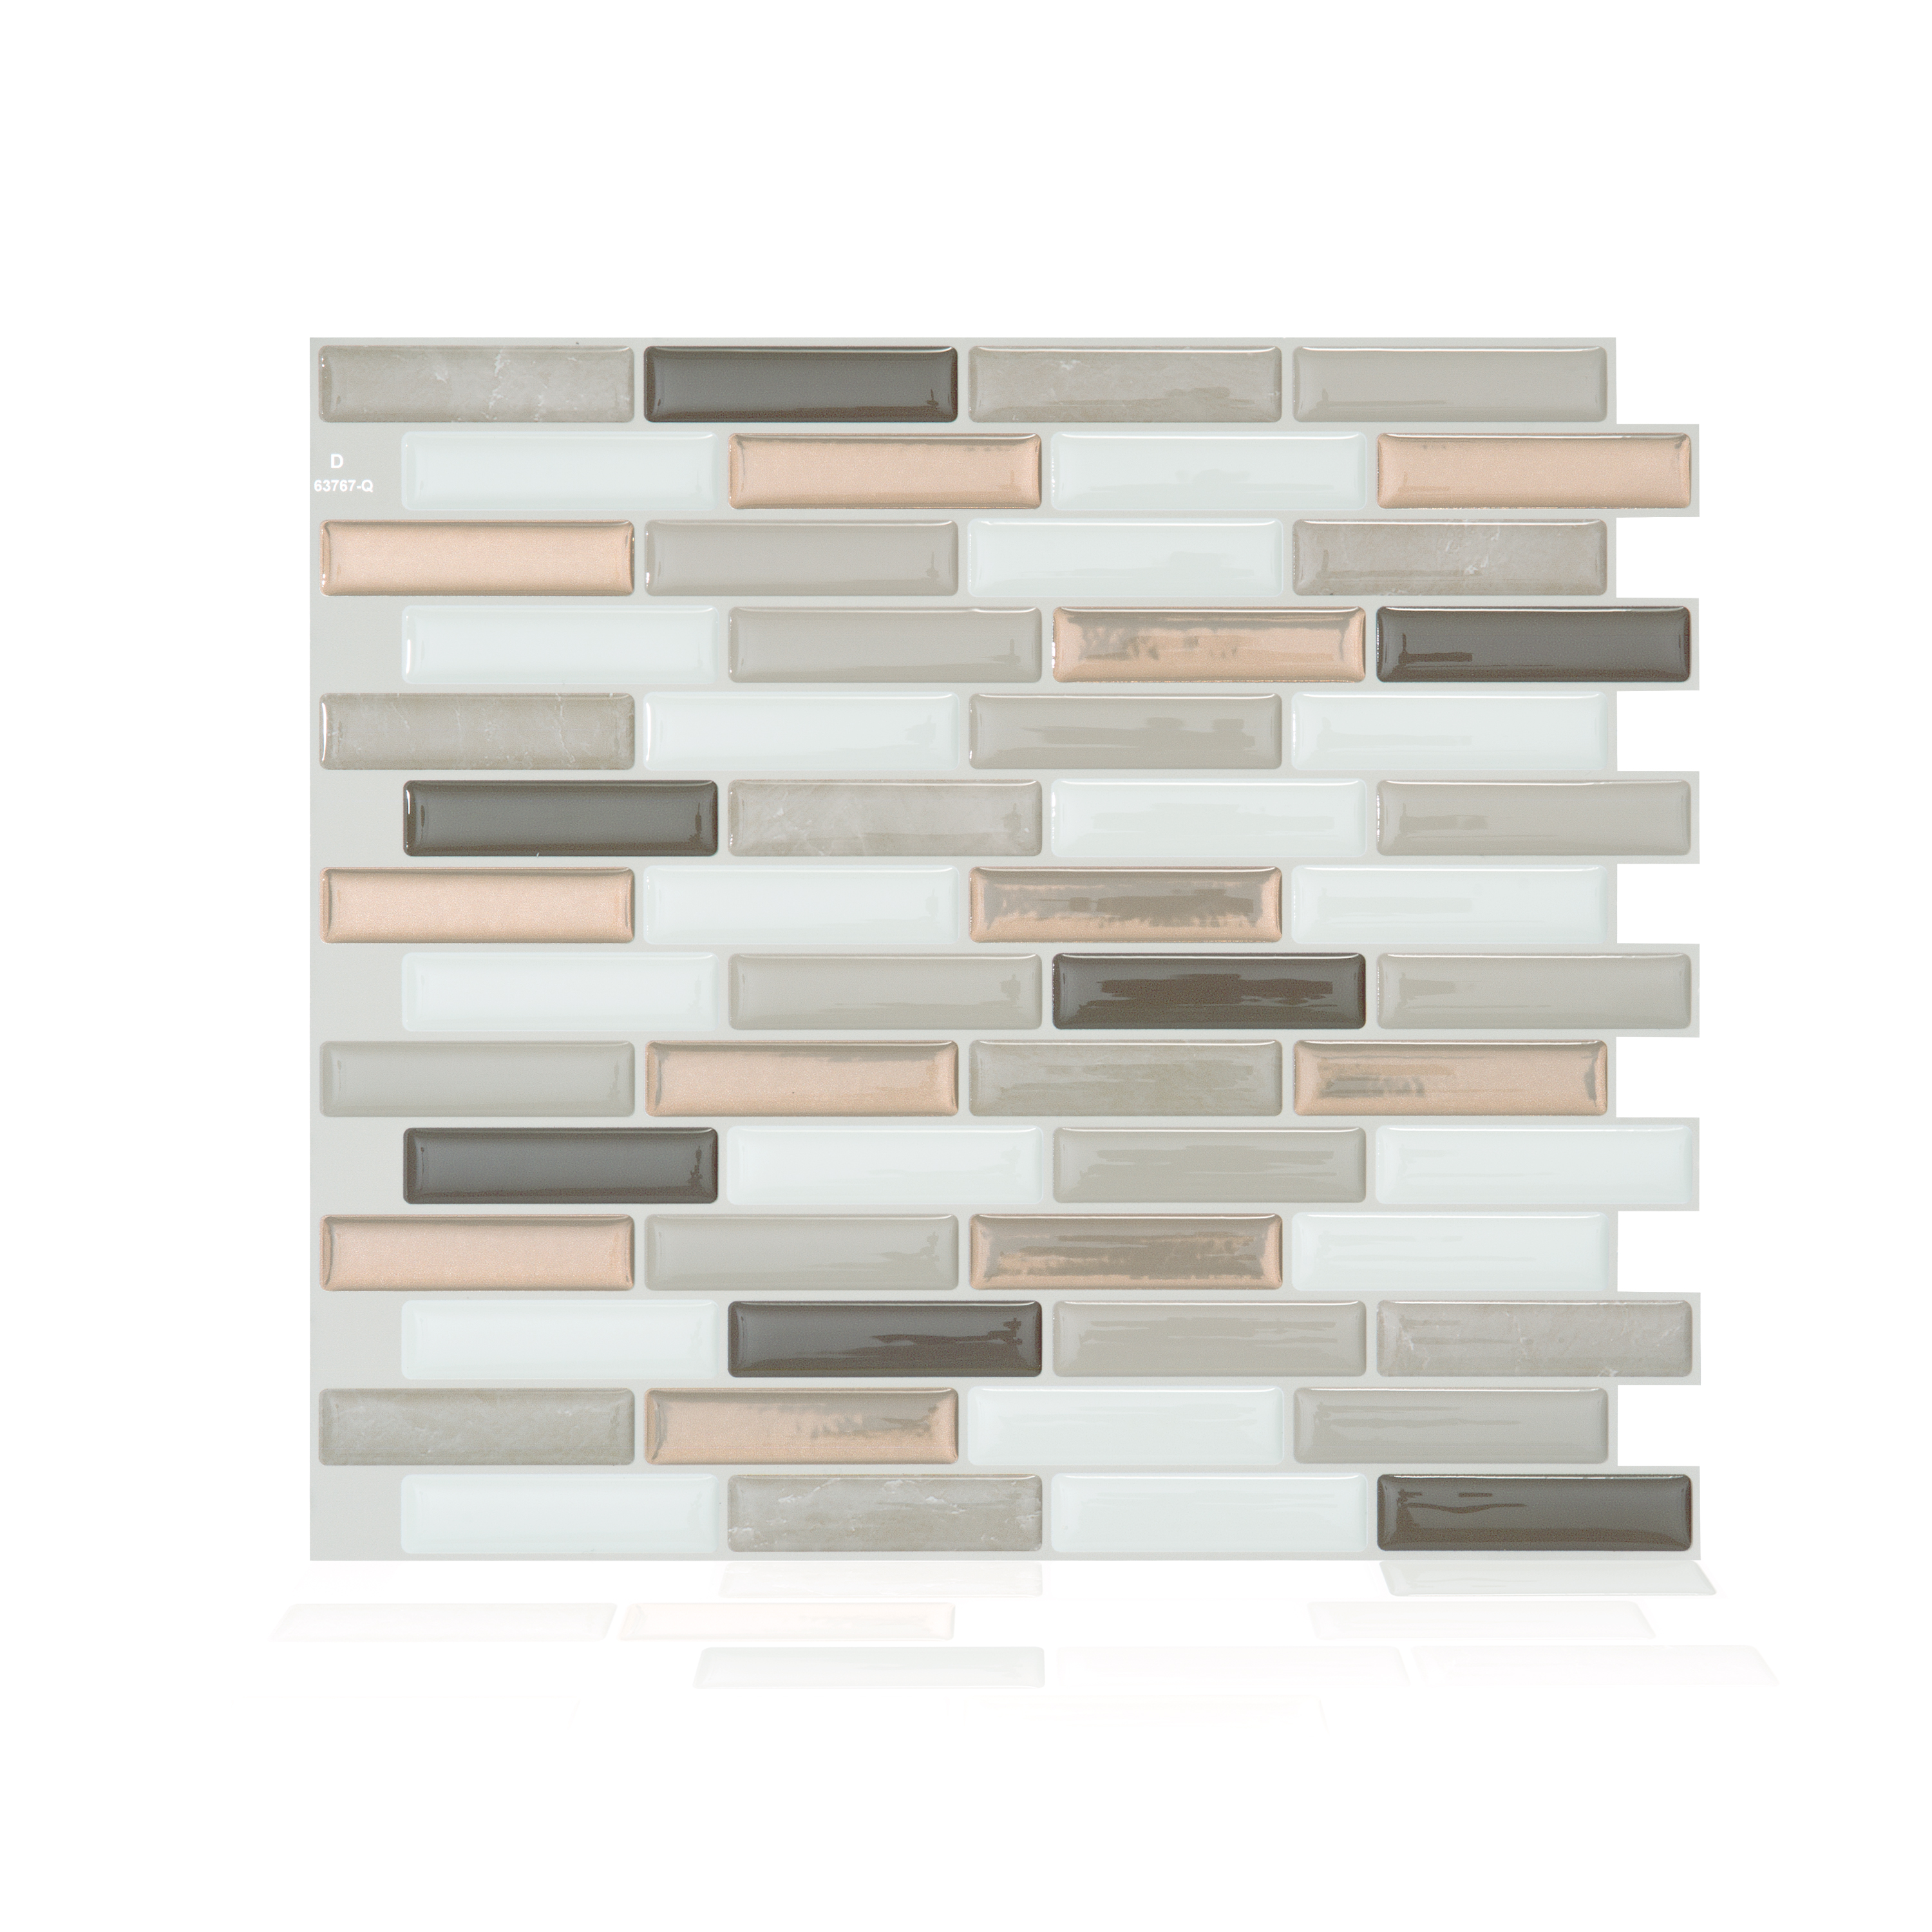 Smart Tiles 10.20 in x 9 in Peel and Stick Self-Adhesive Mosaic Backsplash Wall Tile - Milenza Andrea (each)